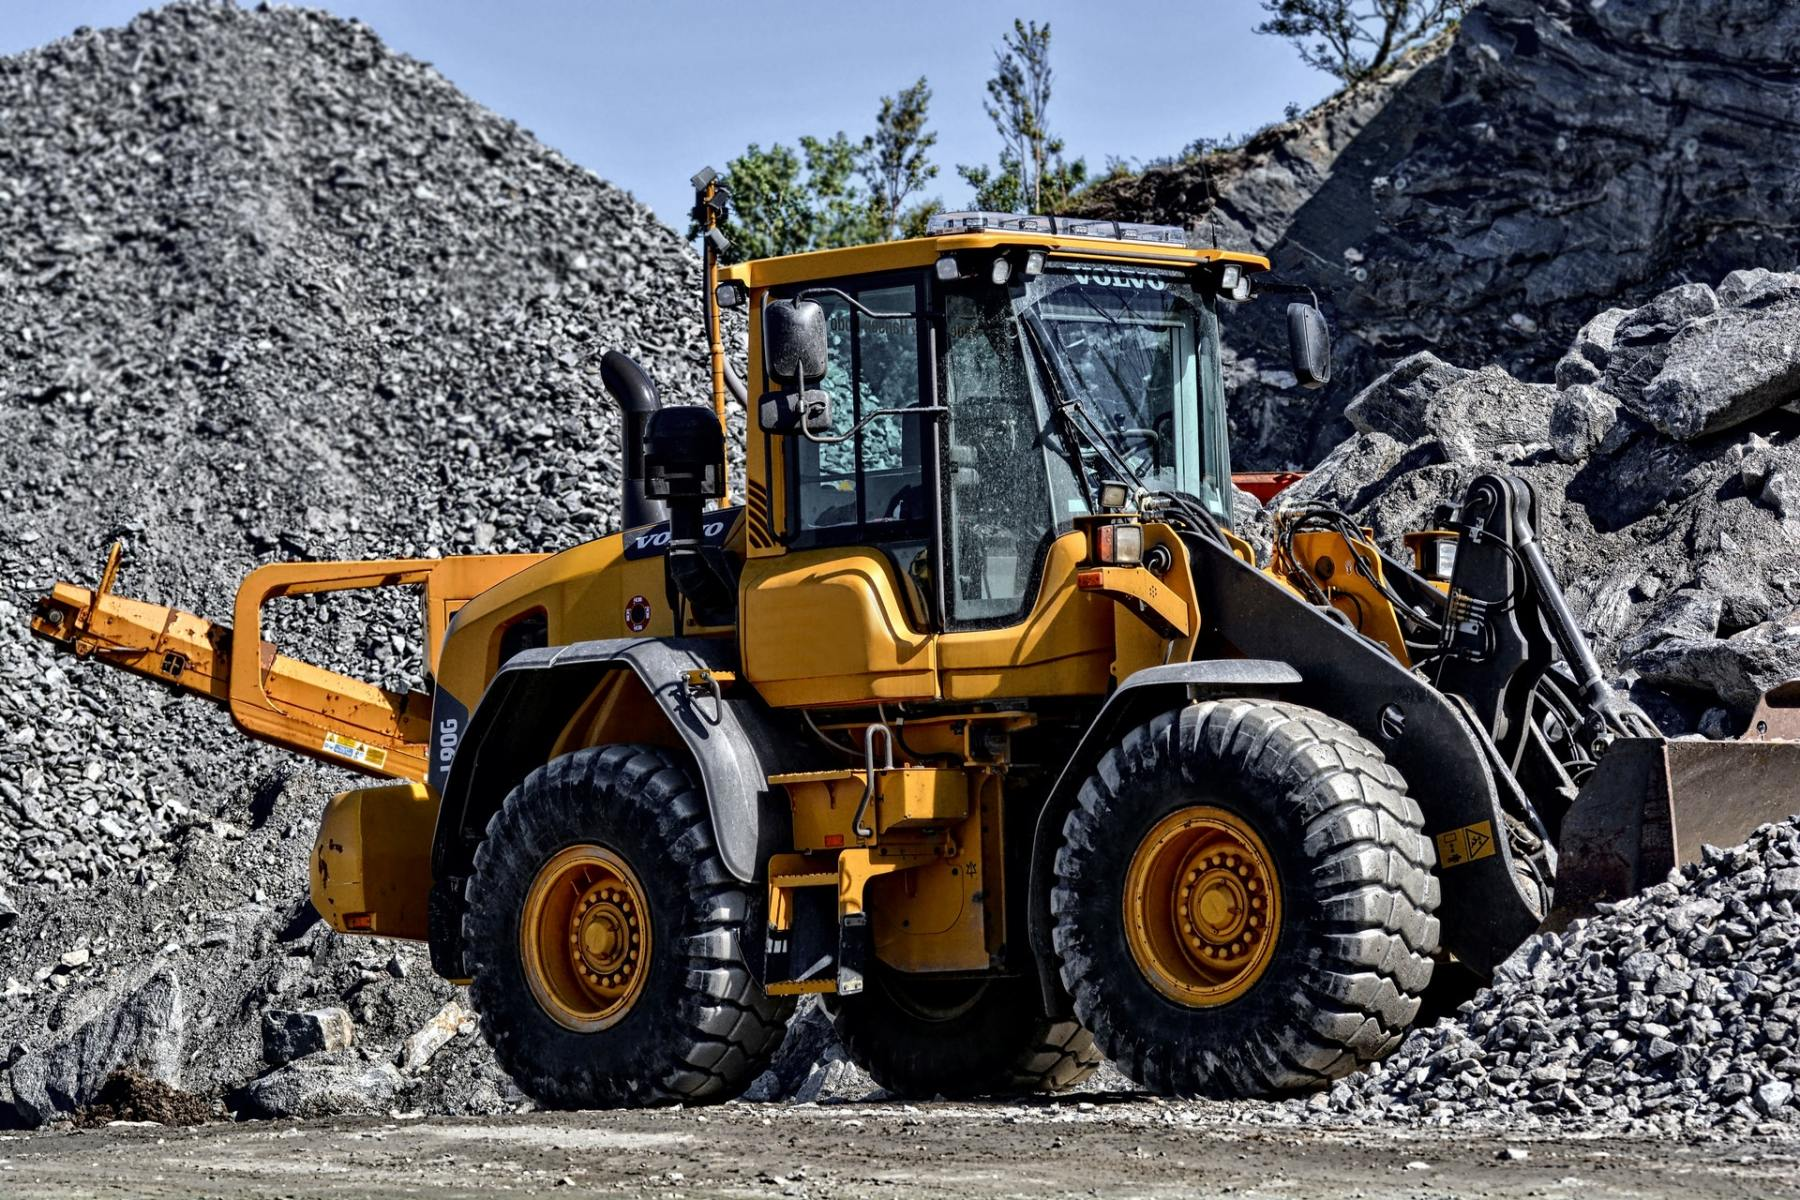 orange-and-black-tractor-next-to-piles-of-rocks-162639